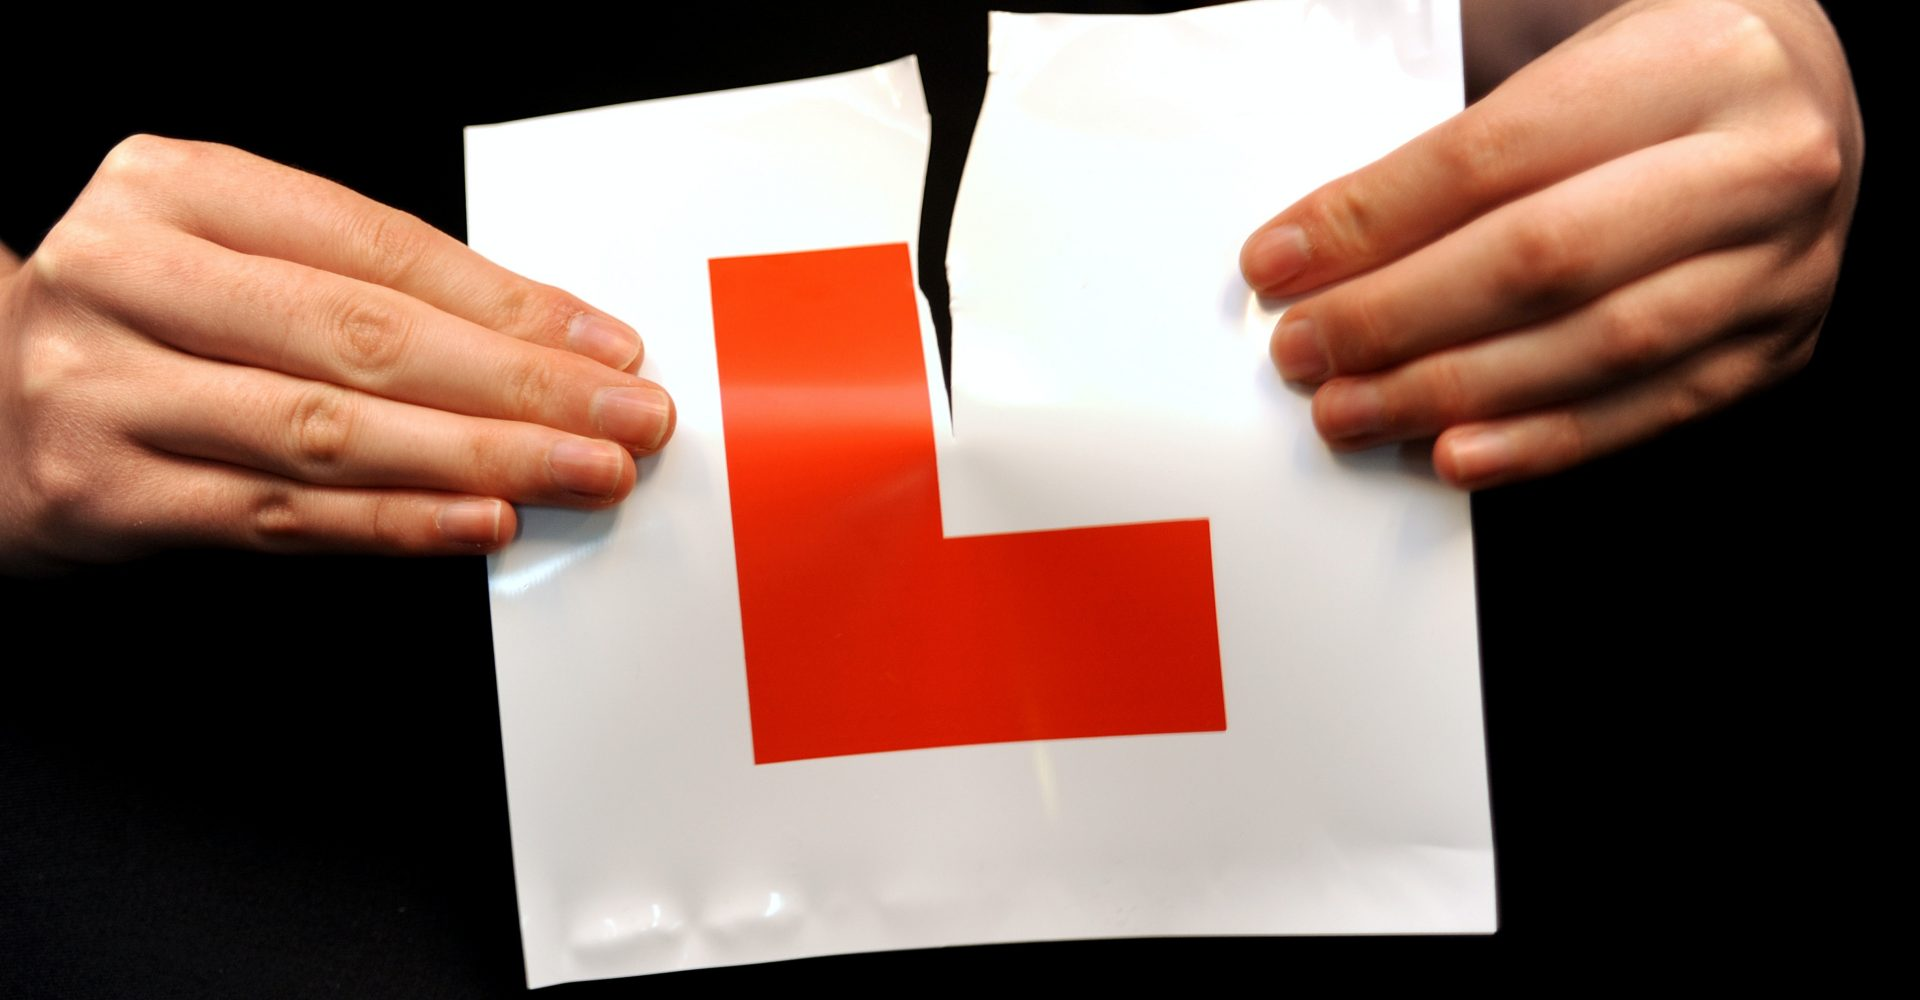 Driving tests could start at supermarkets to save money